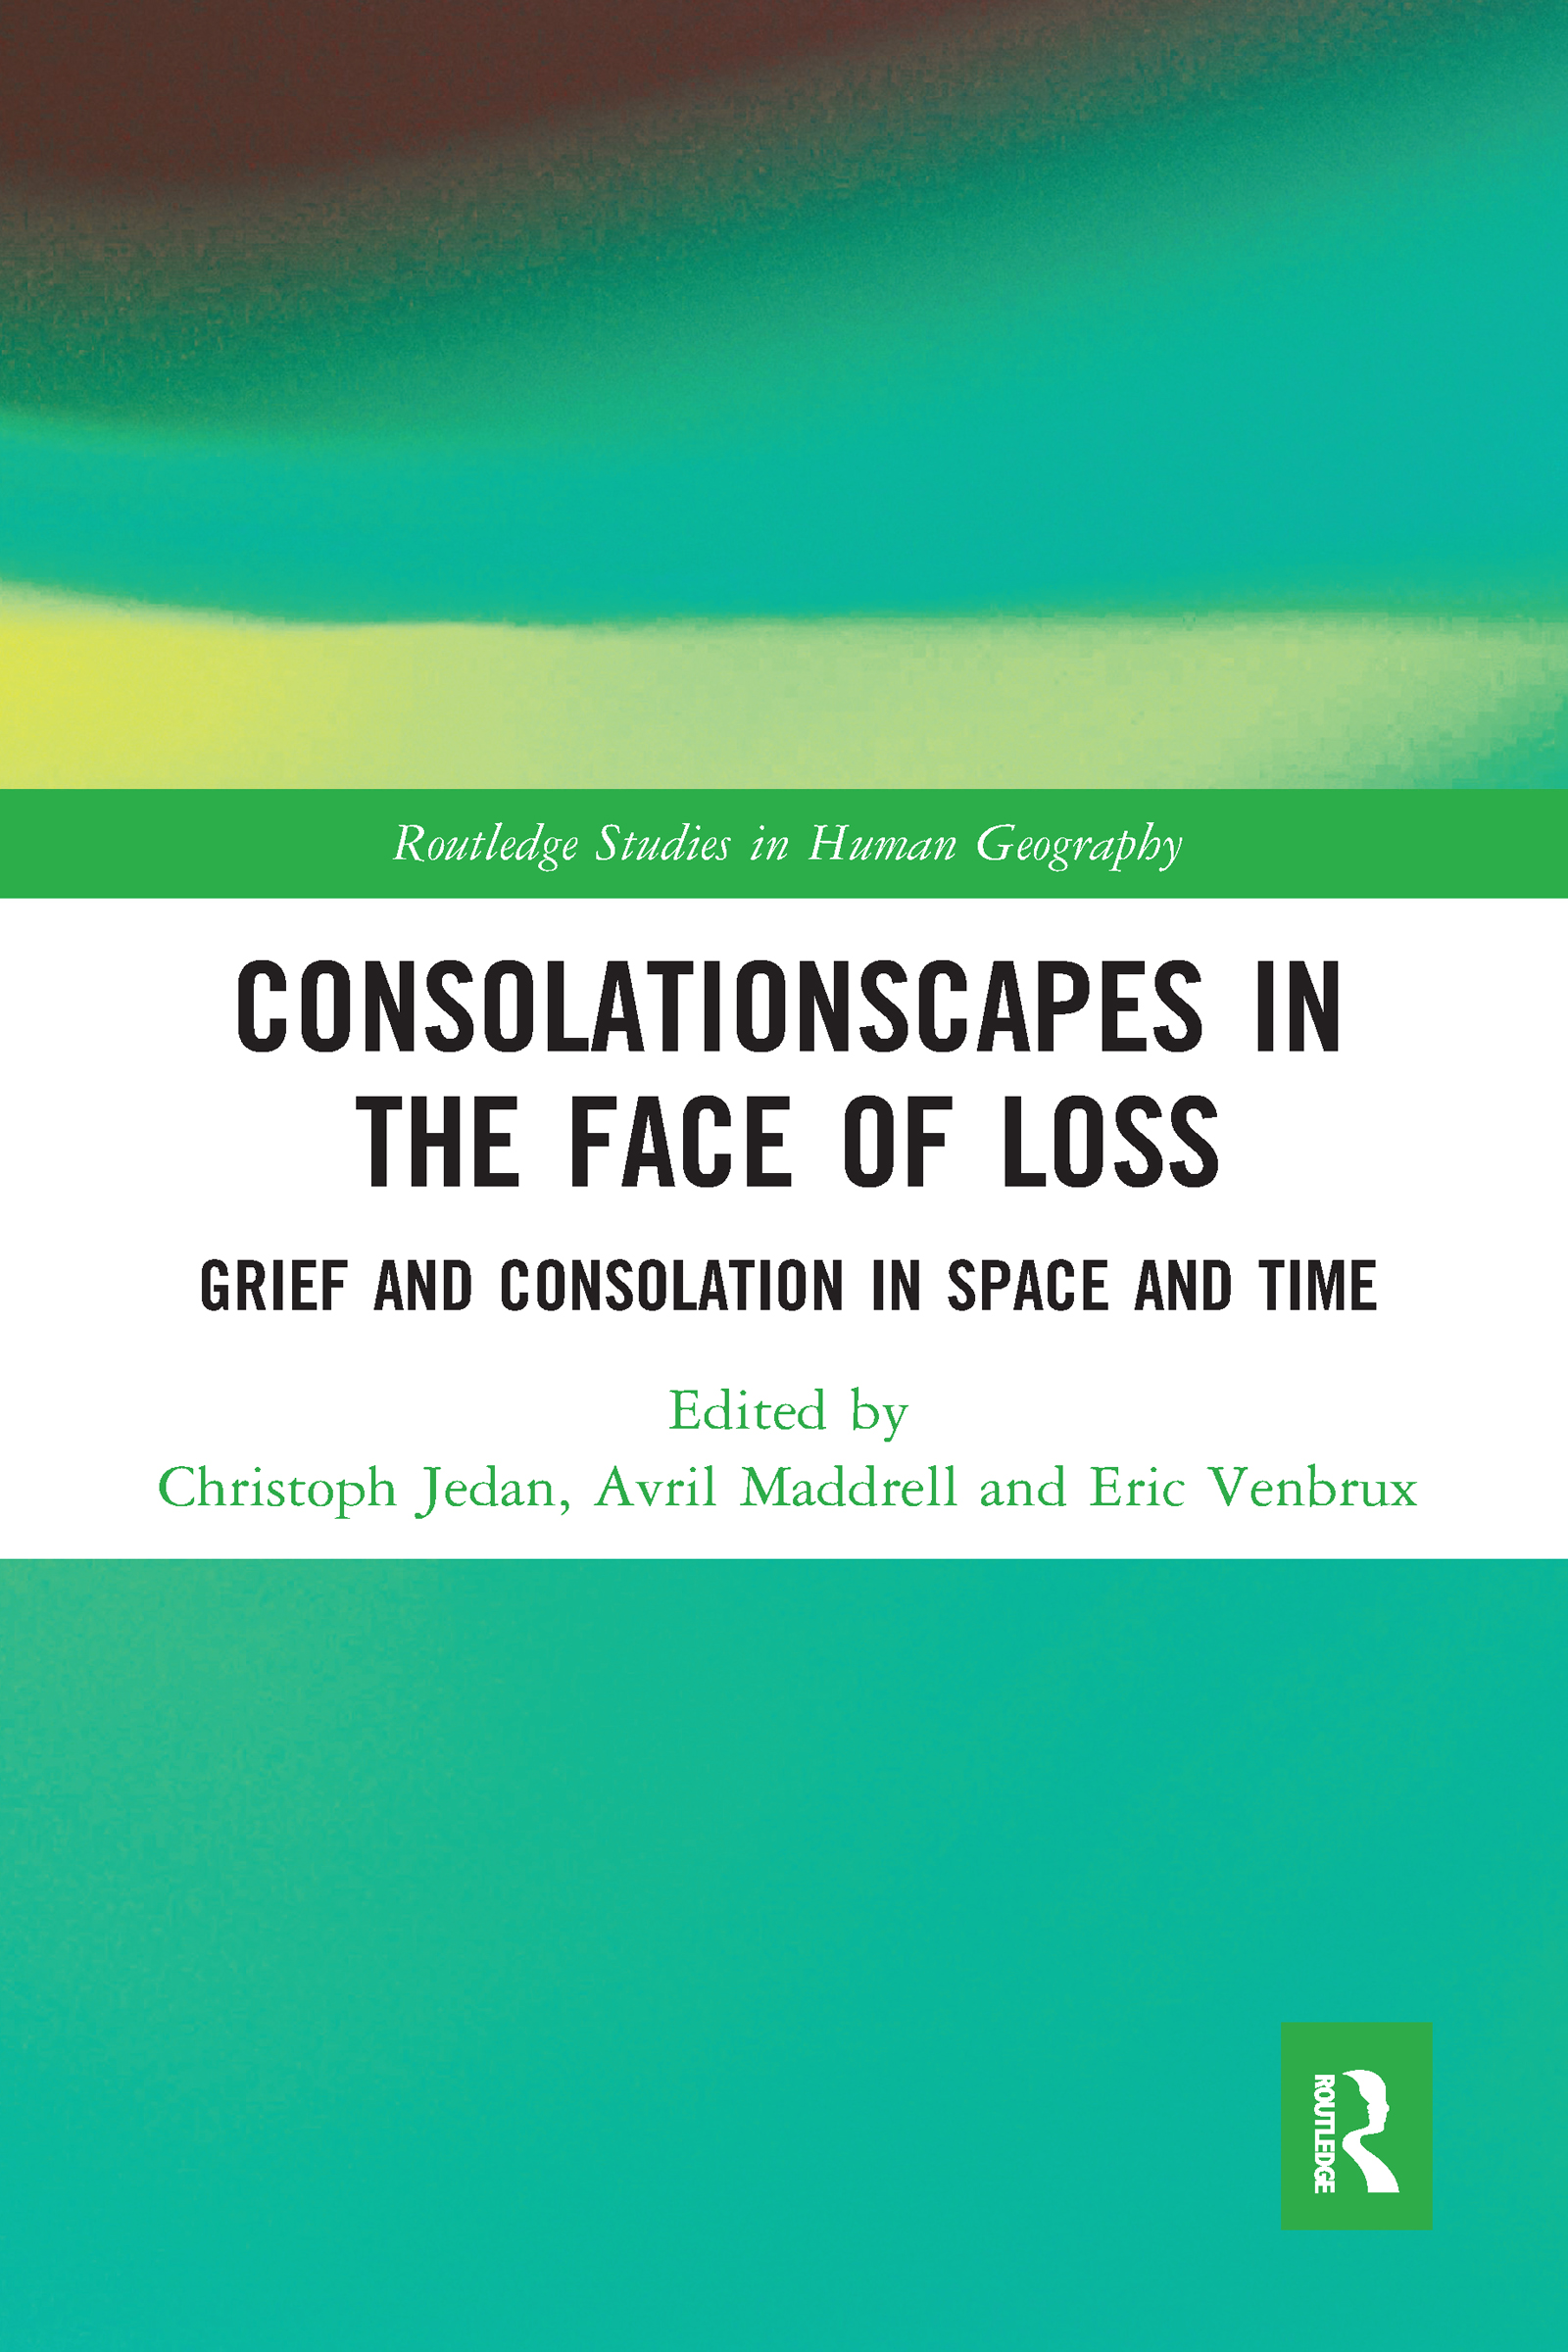 Consolationscapes in the Face of Loss